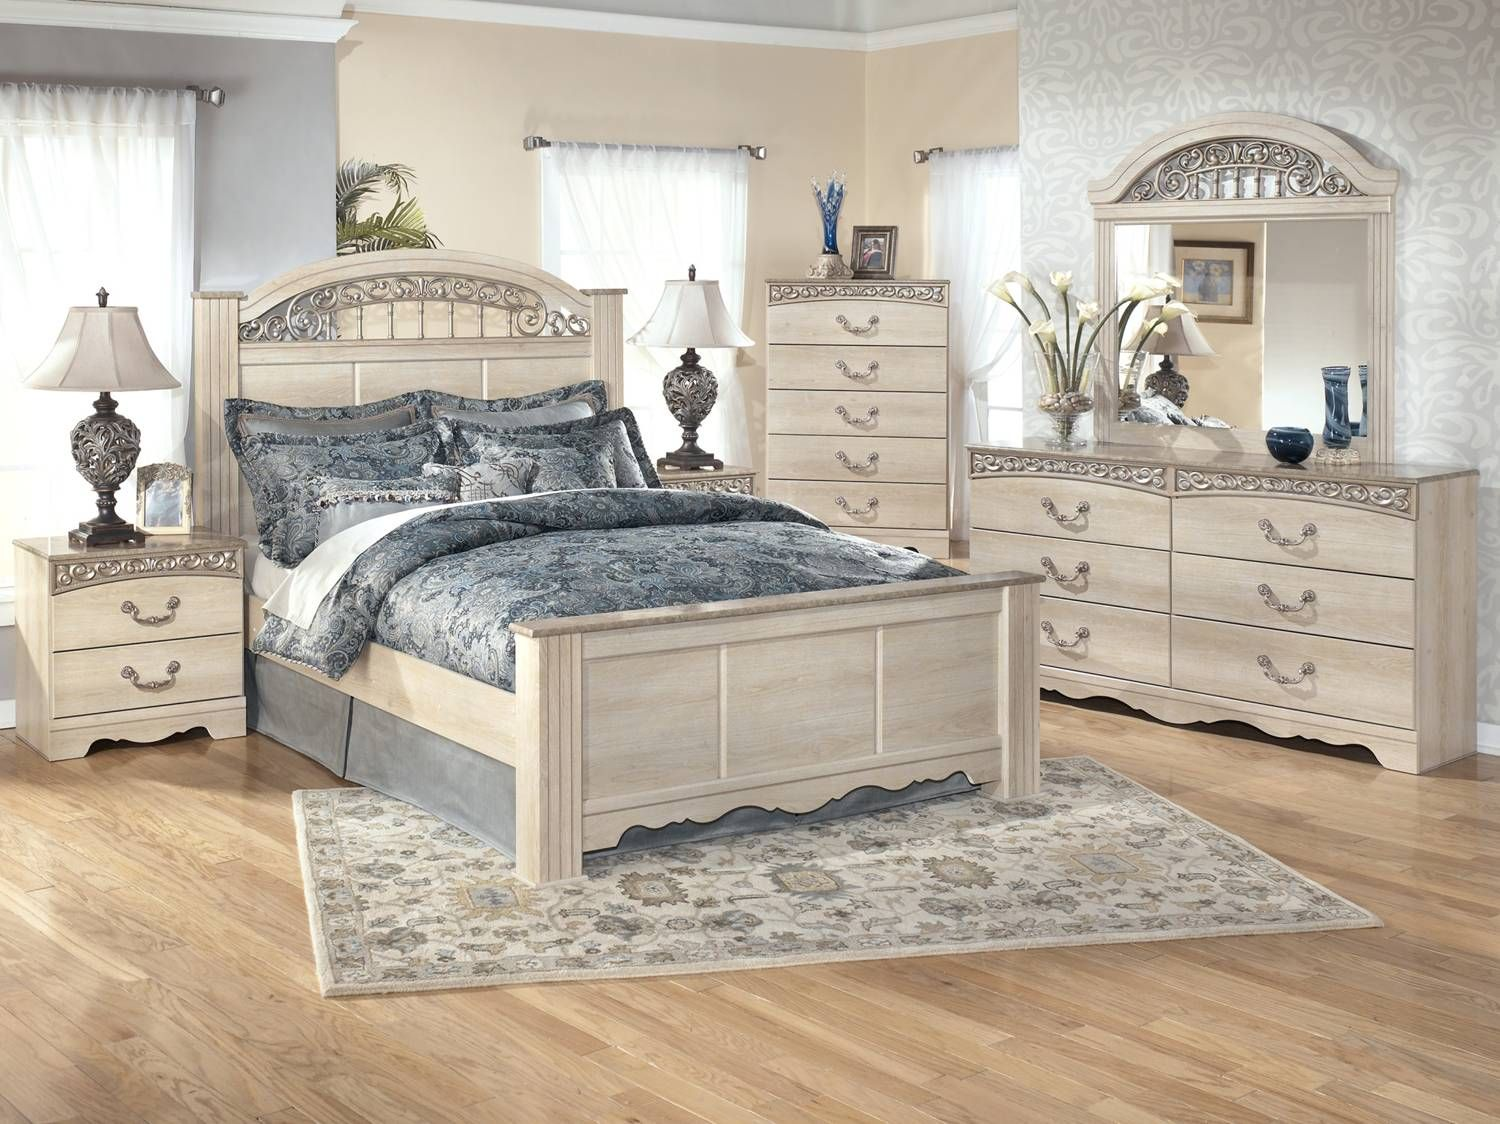 Ashley white bedroom furniture - 17 Best Ideas About Ashley Furniture Bedroom Sets On Pinterest Ashleys Furniture Rustic Bedroom Furniture Sets And Master Bedroom Furniture Inspiration